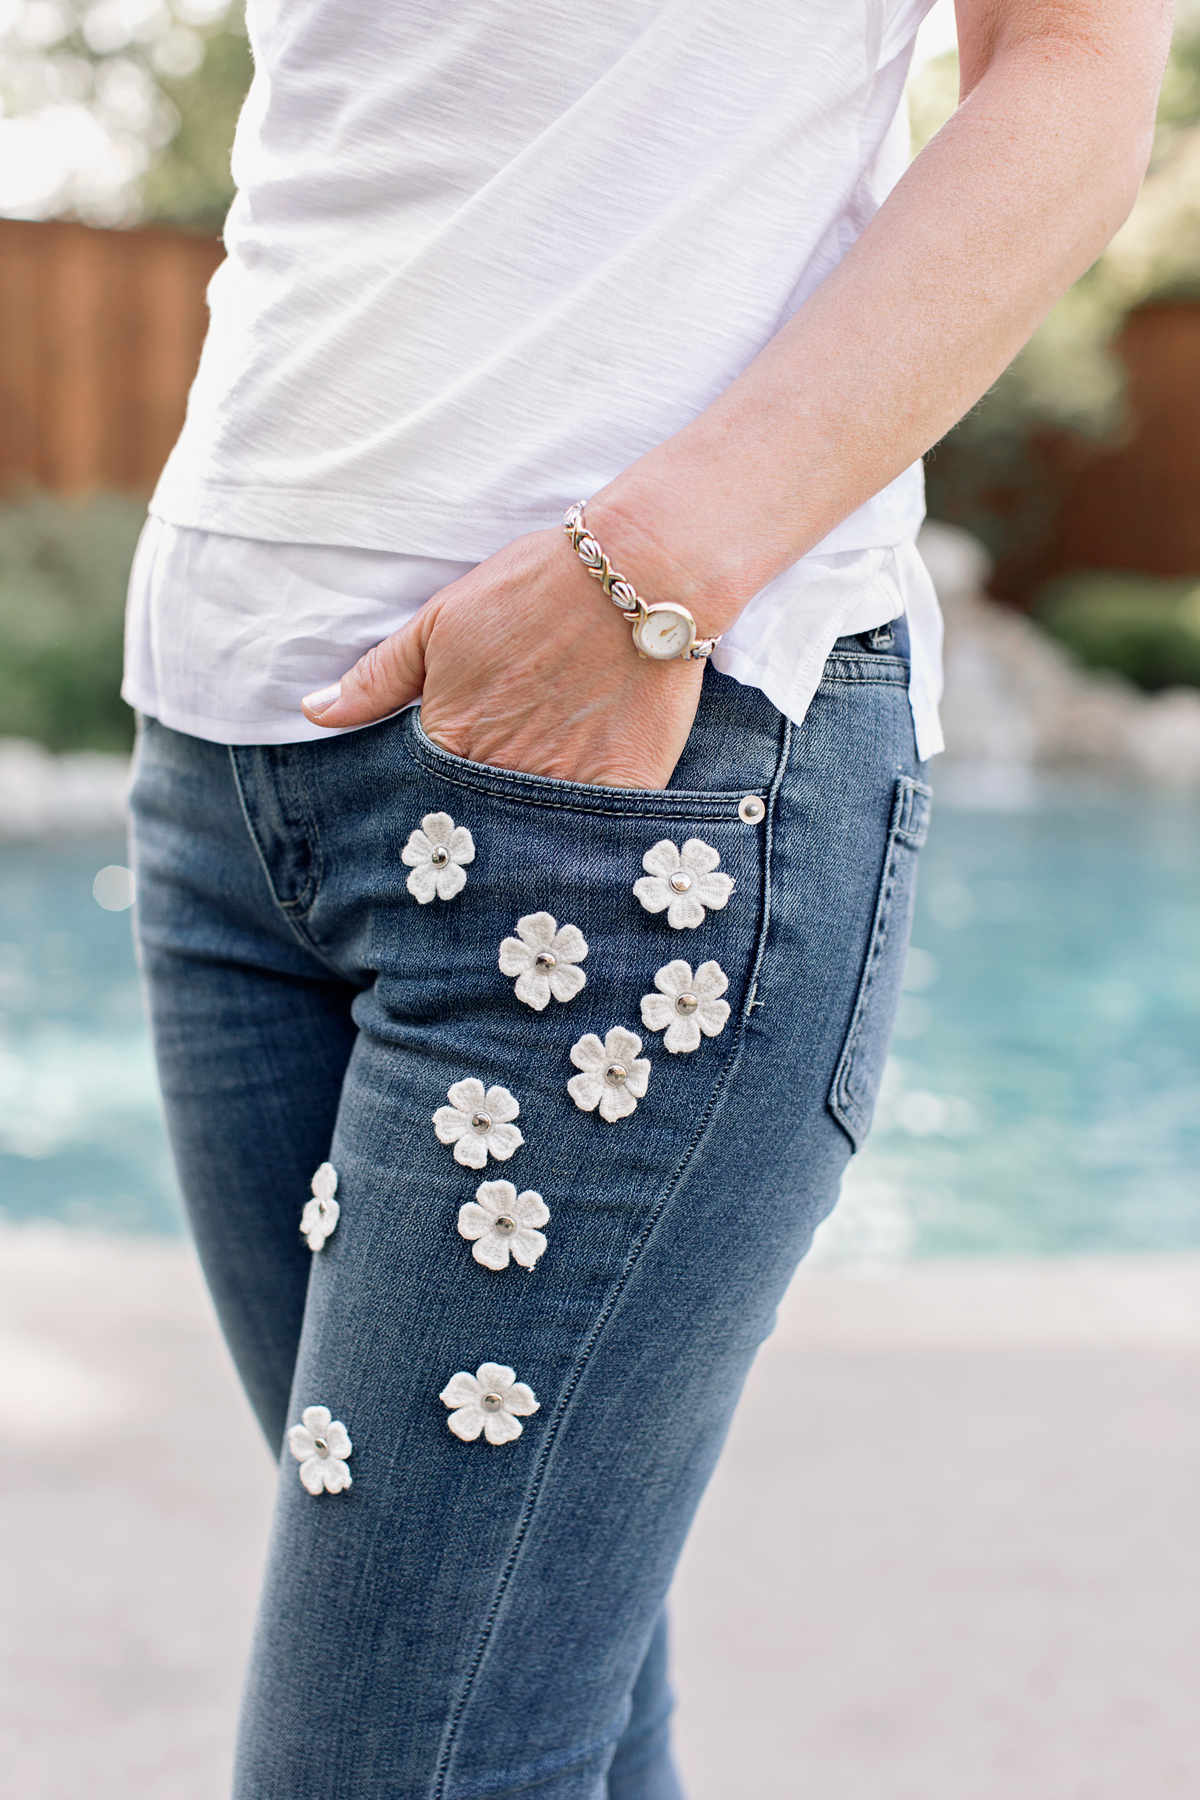 details, detaiing, embellishments, cece floral embellished jeans, jeans with white flowers, vince camuto ruffle sleeve tee, estella Bartlett embossed pouch, cece classic lace hem skinny white jeans, scallop hem white jeans, white skinny jeans with embroidered hem, embroidered hem, white embellished jeans, ted baker floral applique sleeve tee, floral applique tee, ted baker tee, ruffle sleeve tee, white leather pouch, silver monogram necklace, bauble bar earrings, bauble bar earrings with jeans, bauble bar earrings good with jeans, cece tie neck denim dress, tie neck denim dress, denim dress with tie at neck, denim dress bow neck, bow neck denim dress, cece tie-neck denim dress, denim dress, denim dress with bow, empty nest, empty nester, empty nesters, empty nest syndrome, empty nest help, fashion over 50, empty nest blog